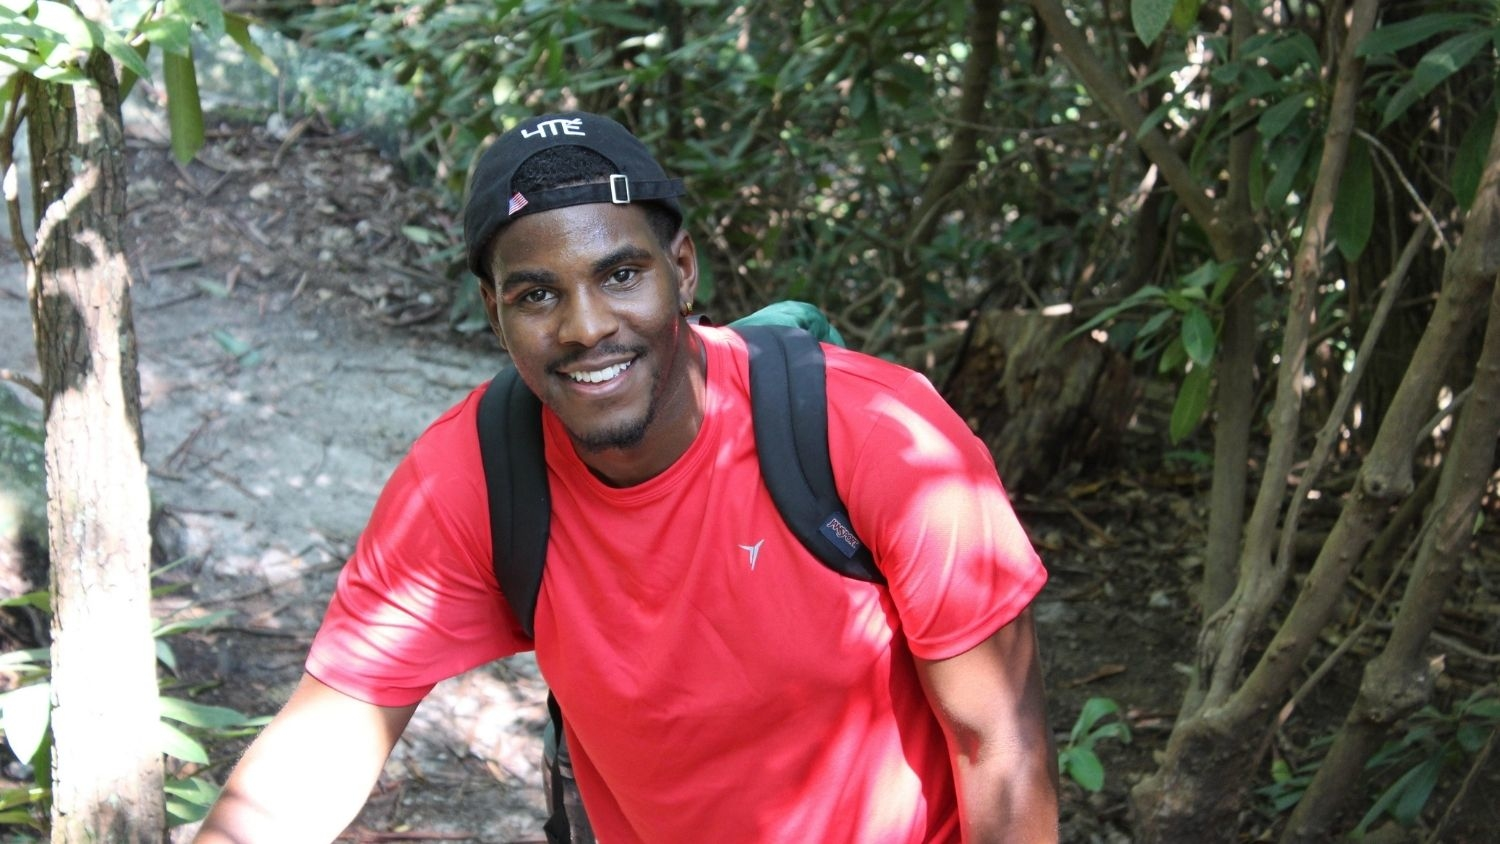 Ryan Barnes - Five Questions with Process Engineer Ryan Barnes - College of Natural Resources at NCState University